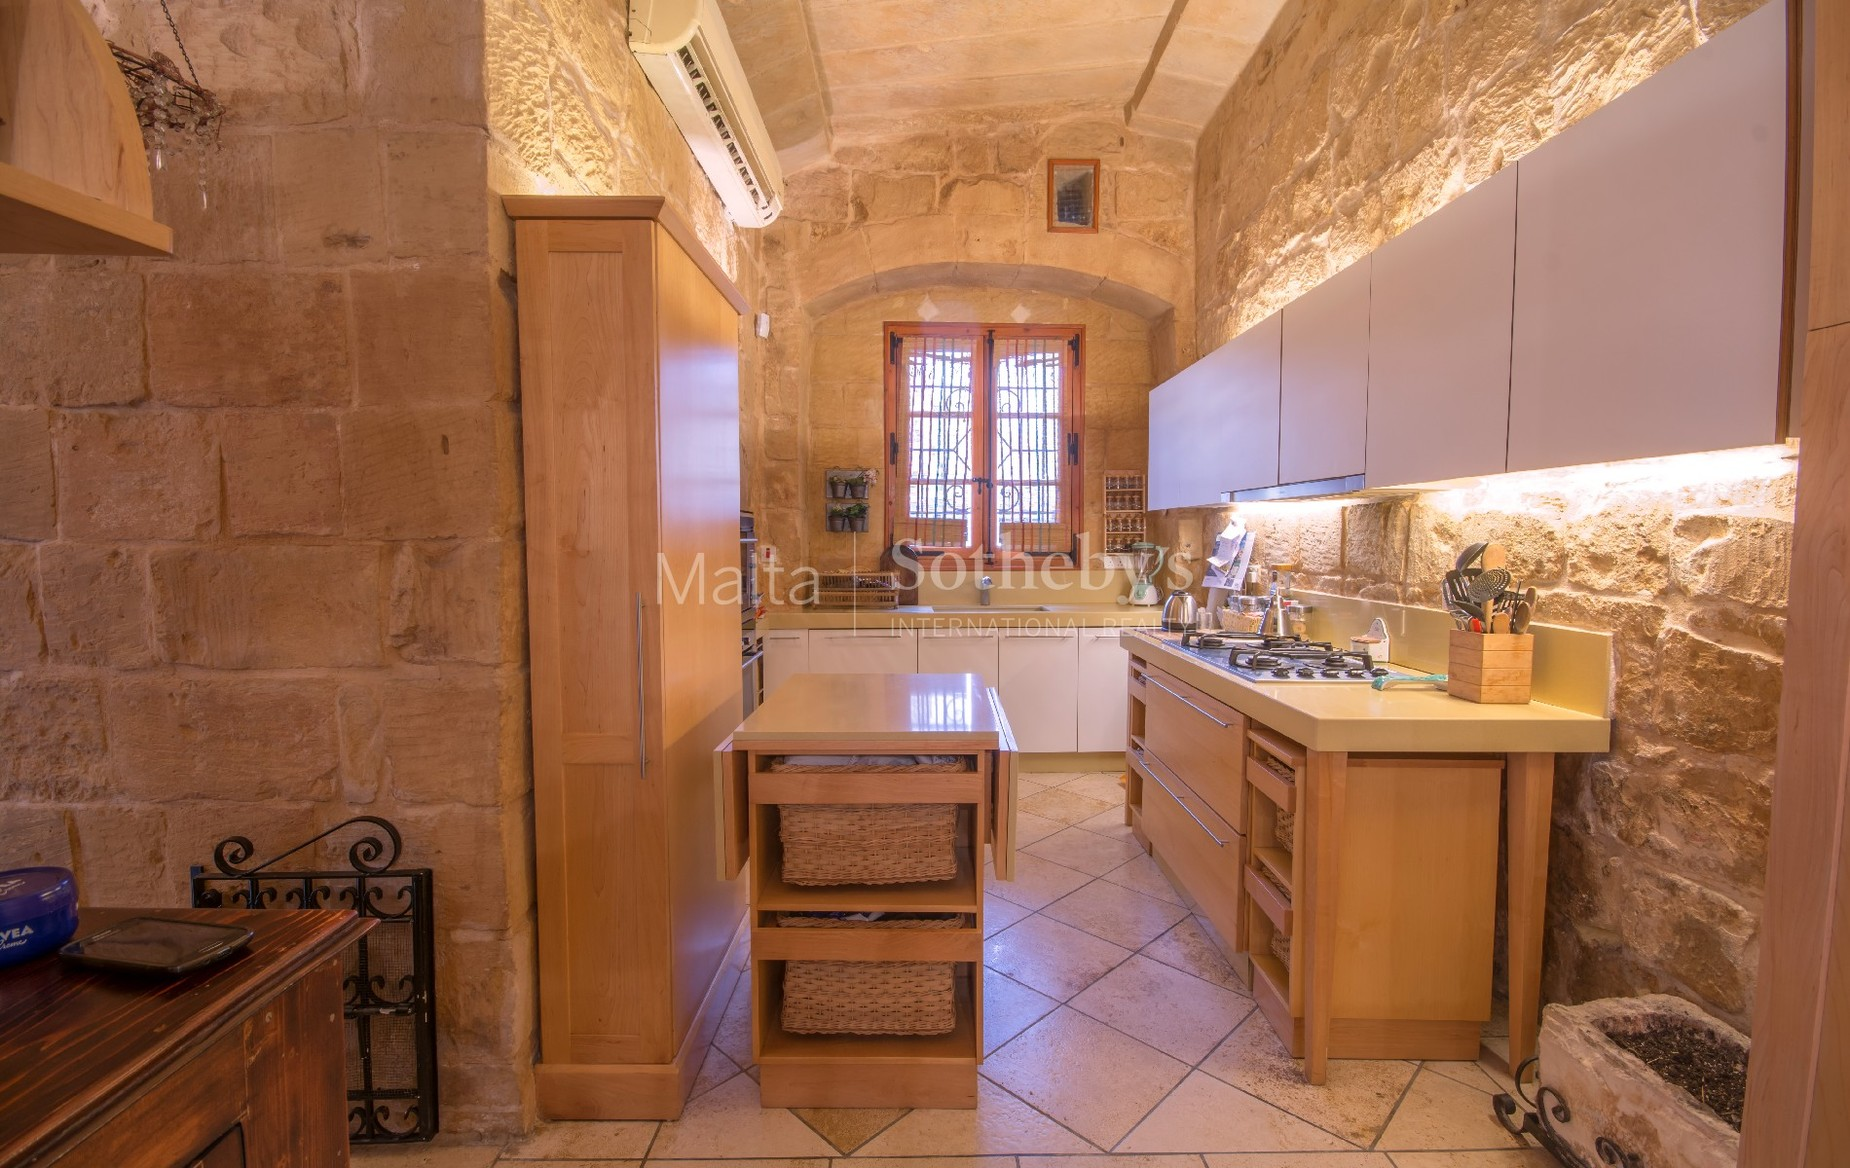 4 bed House of Character For Sale in Birkirkara, Birkirkara - thumb 9